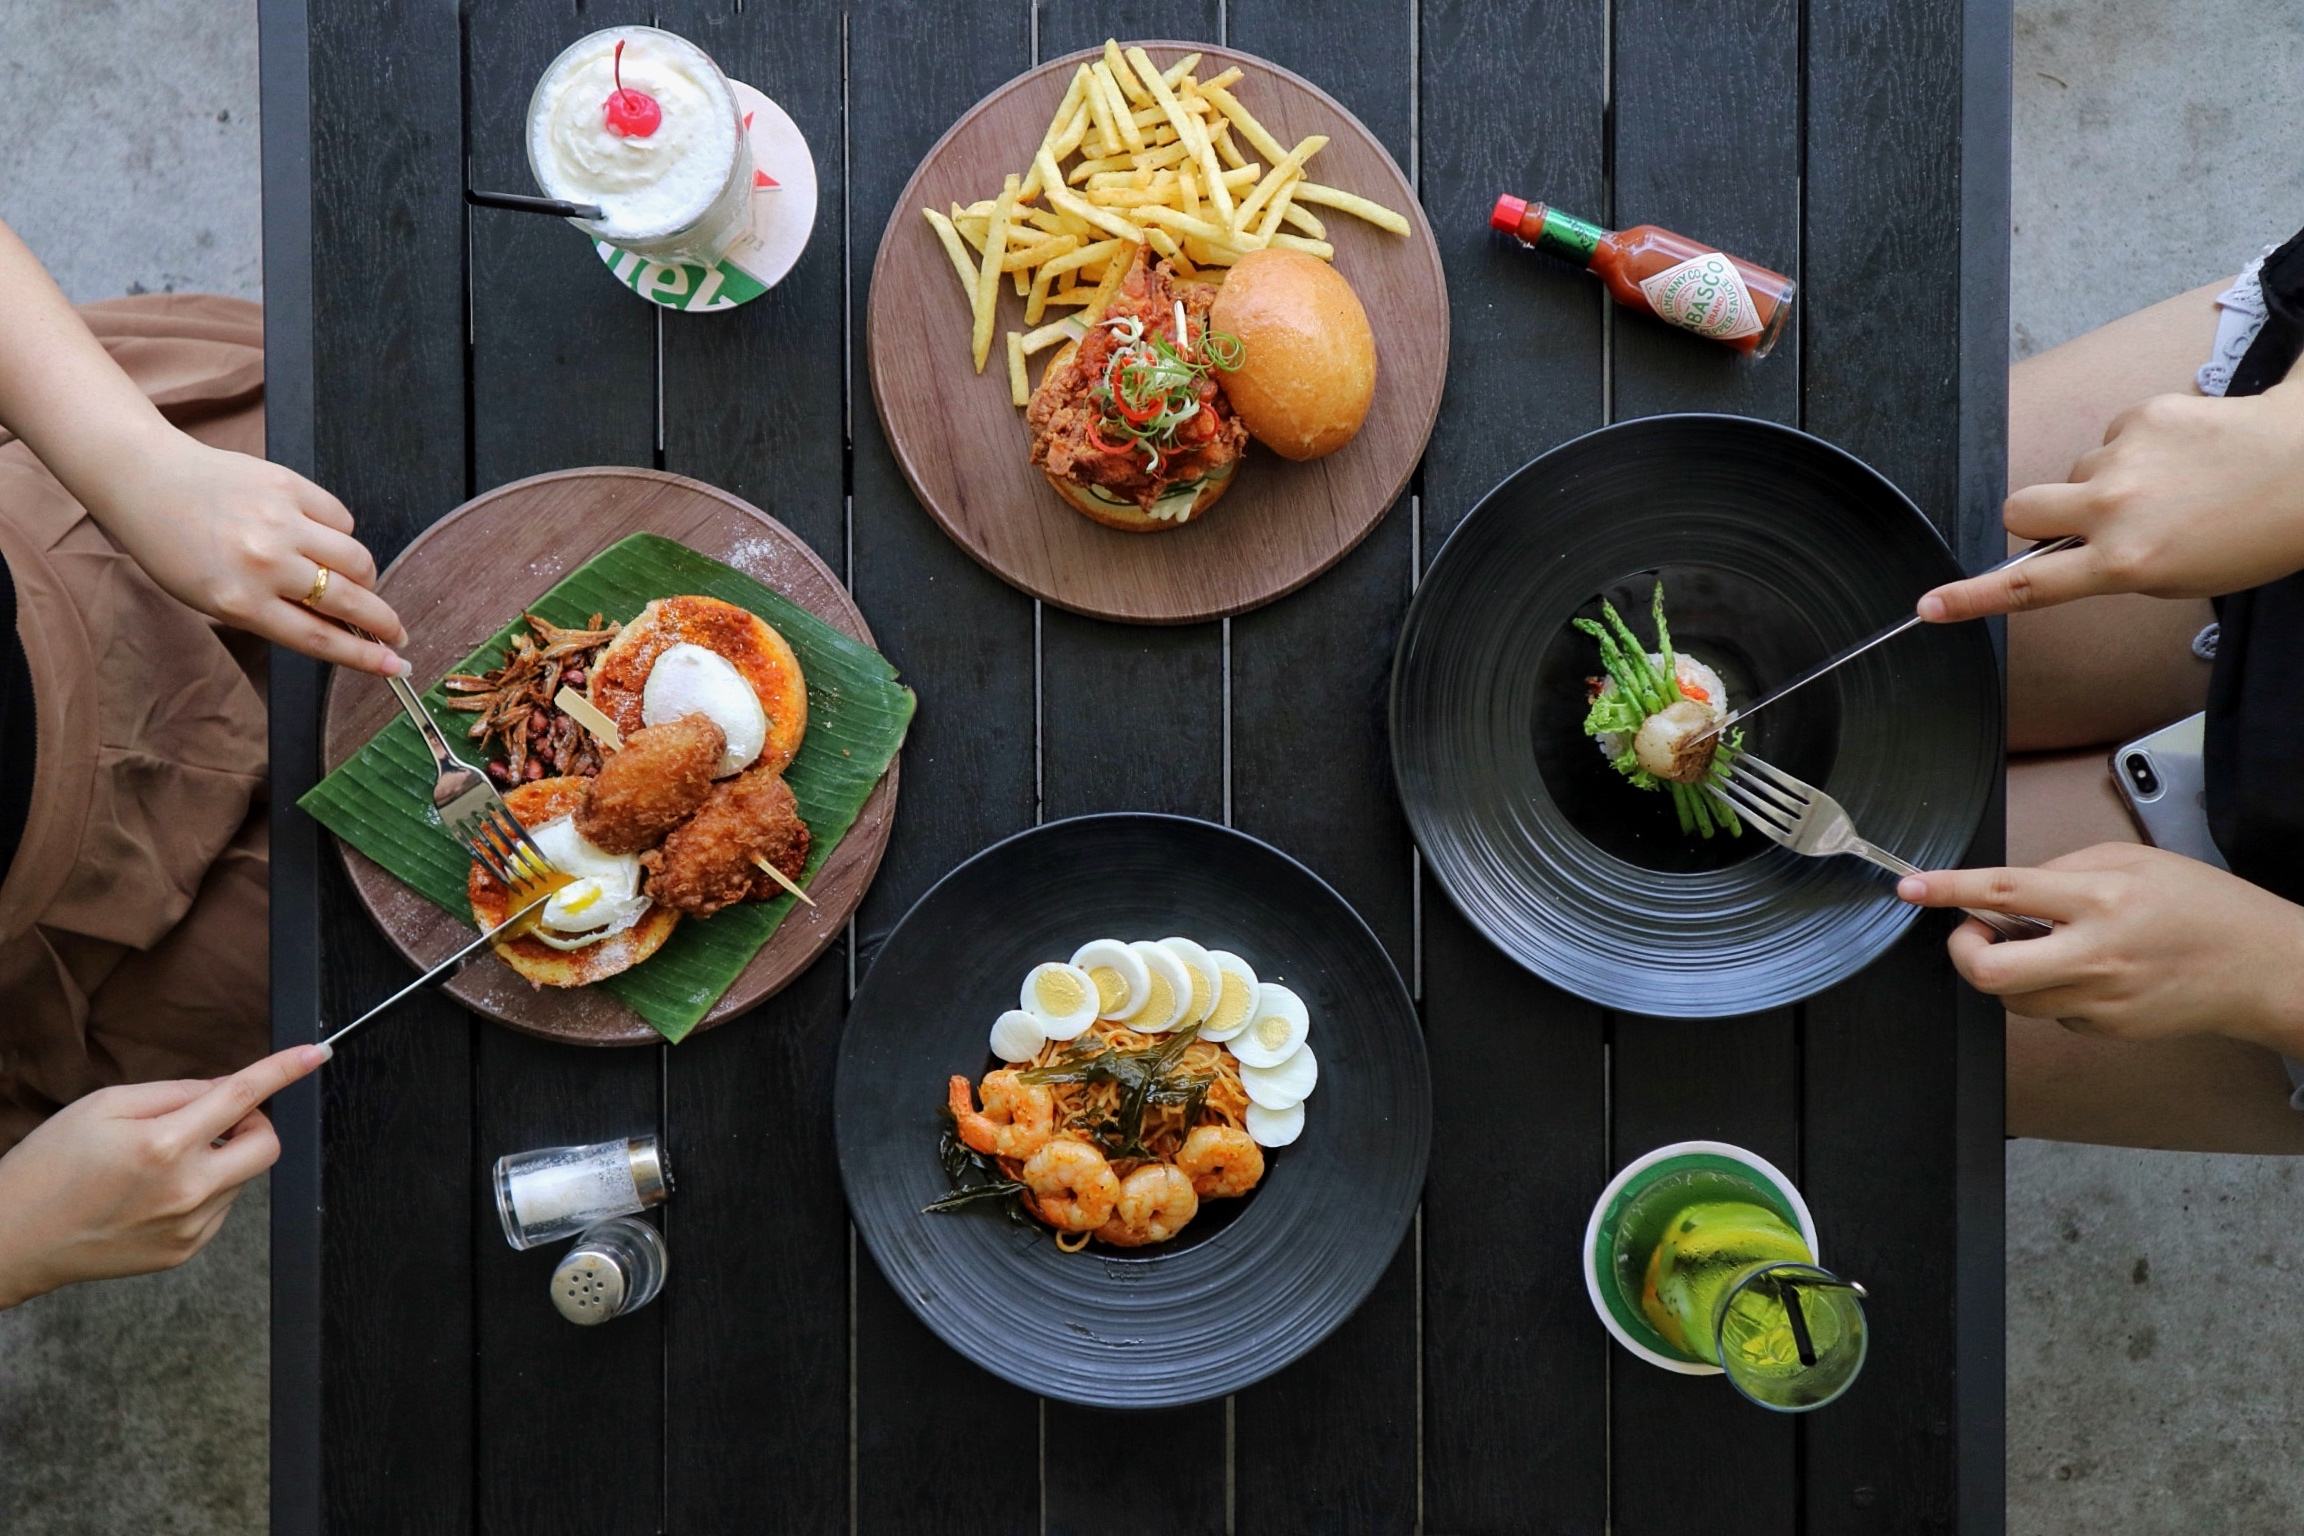 Atmosphere Bistro: New Nasi Lemak Egg Benedict? You sure it's good, and not gimmicky?